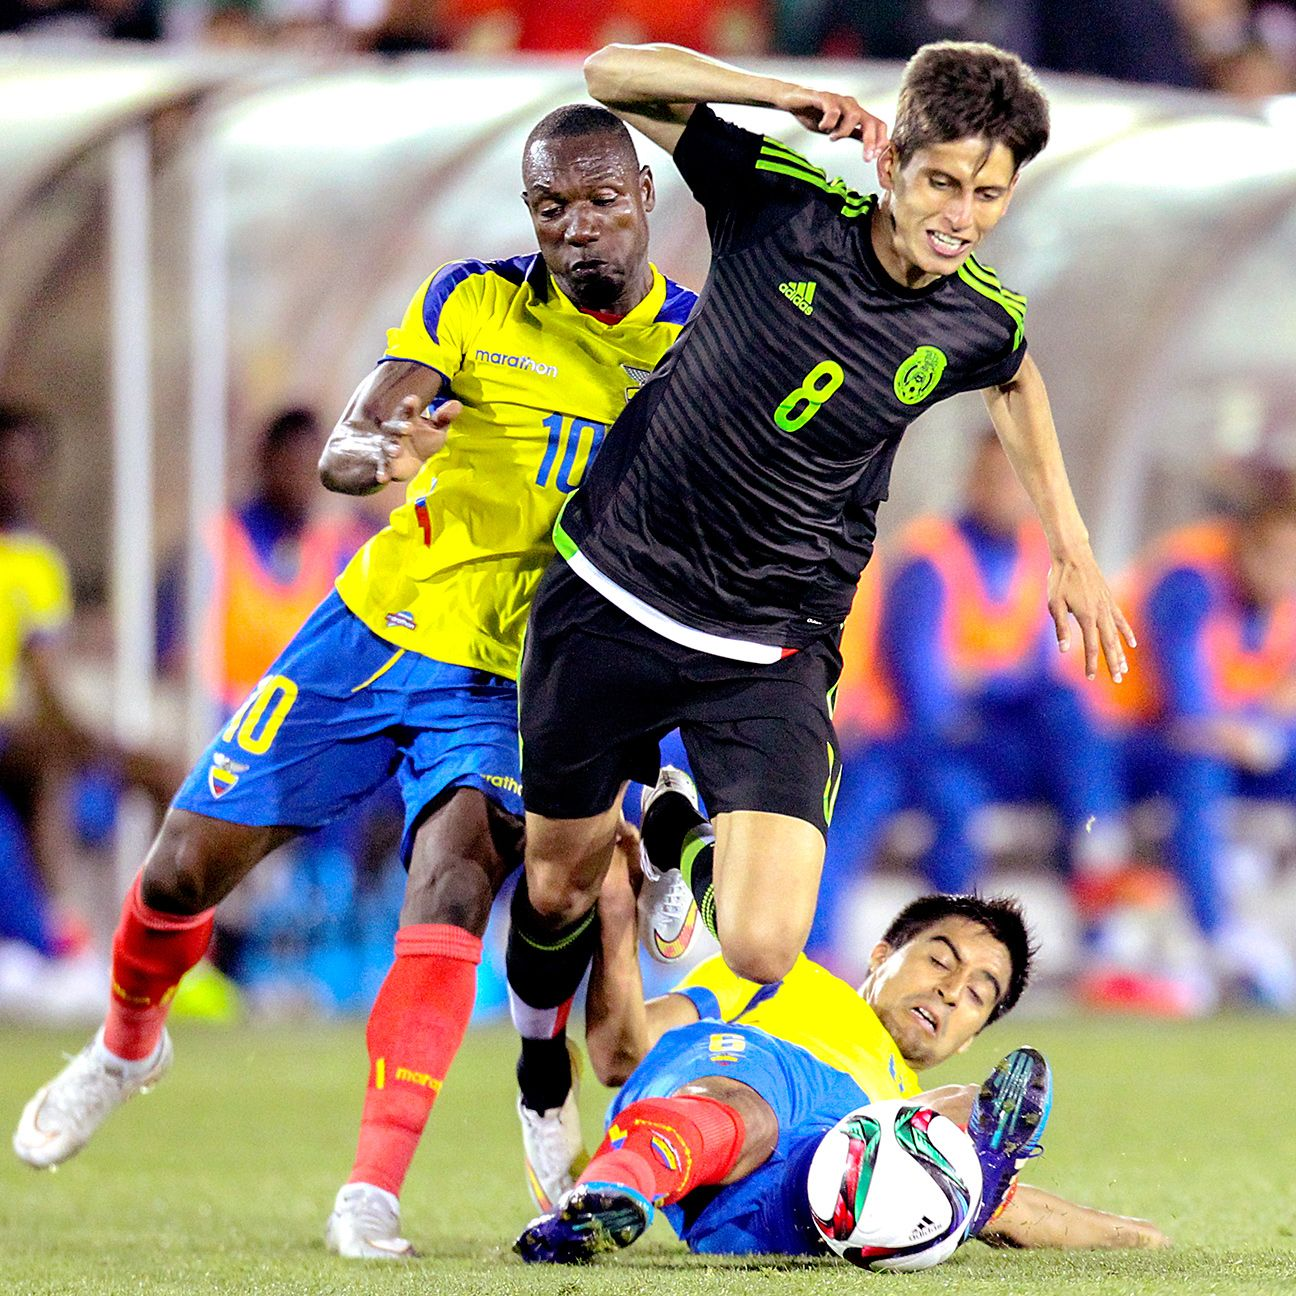 The speedy Jurgen Damm could prove to be a useful second half substitute for Mexico at the Gold Cup this summer.